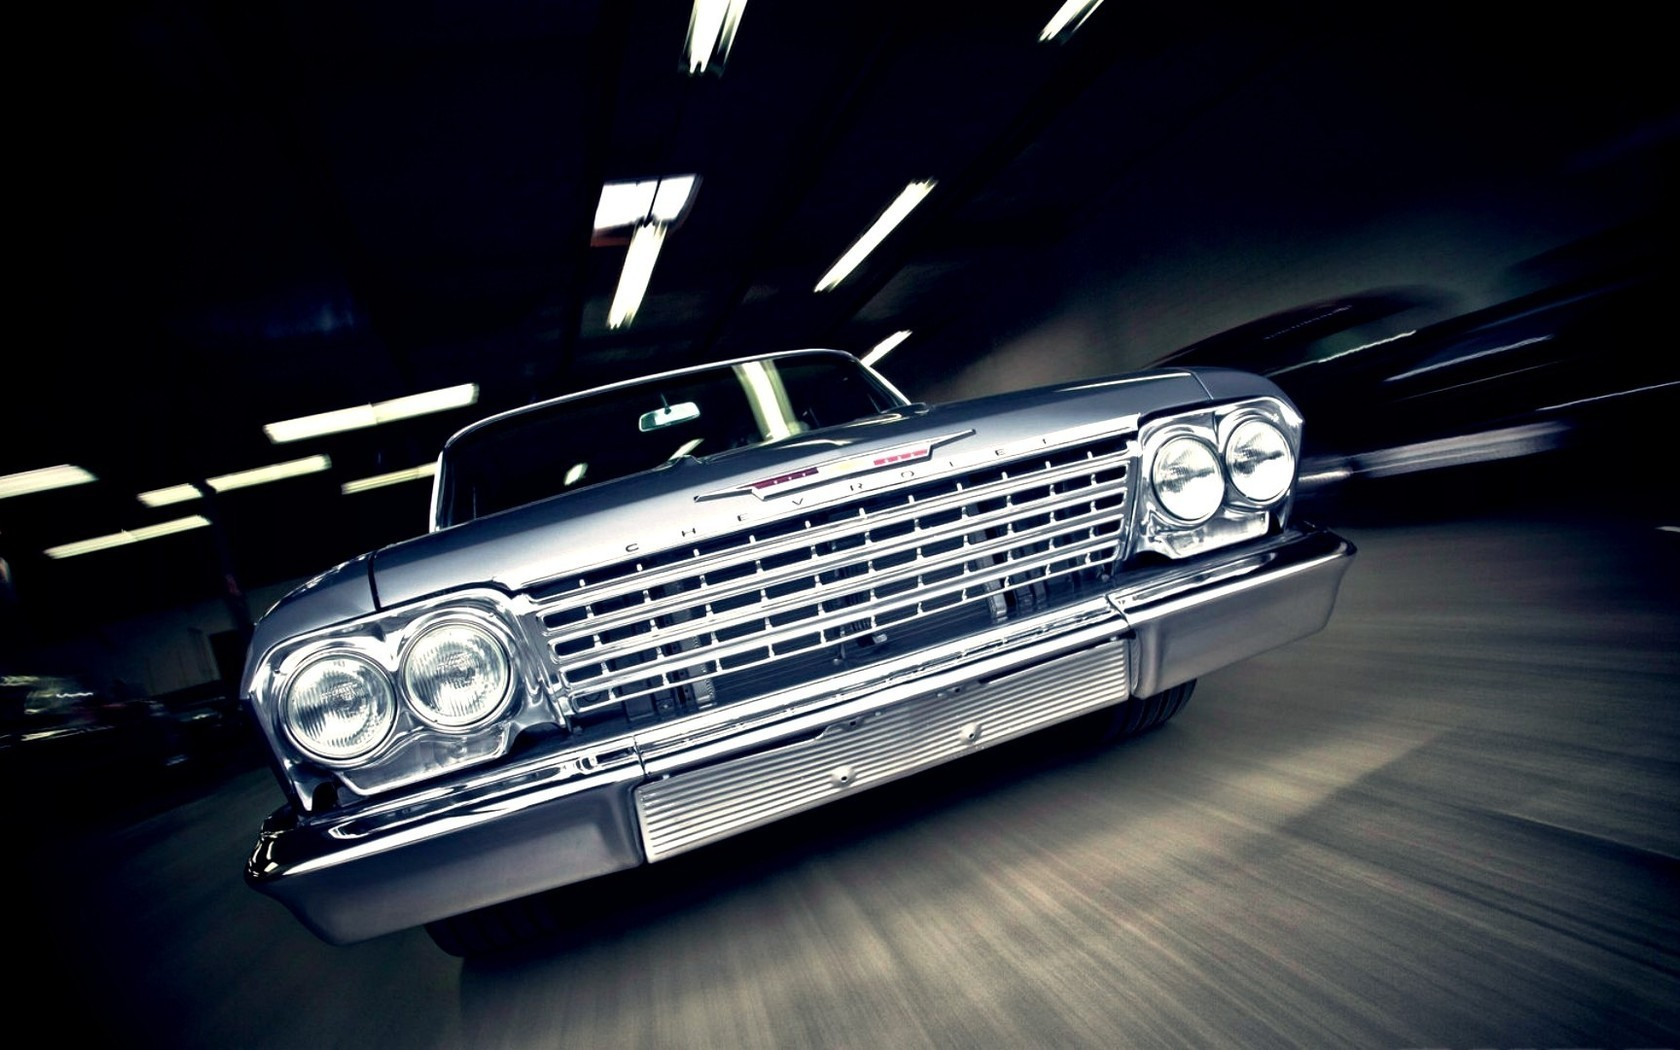 Classic Car Wallpaper 57 Chevy Twin Turbo Ls9 1962 Chevrolet Bel Air Wallpaper And